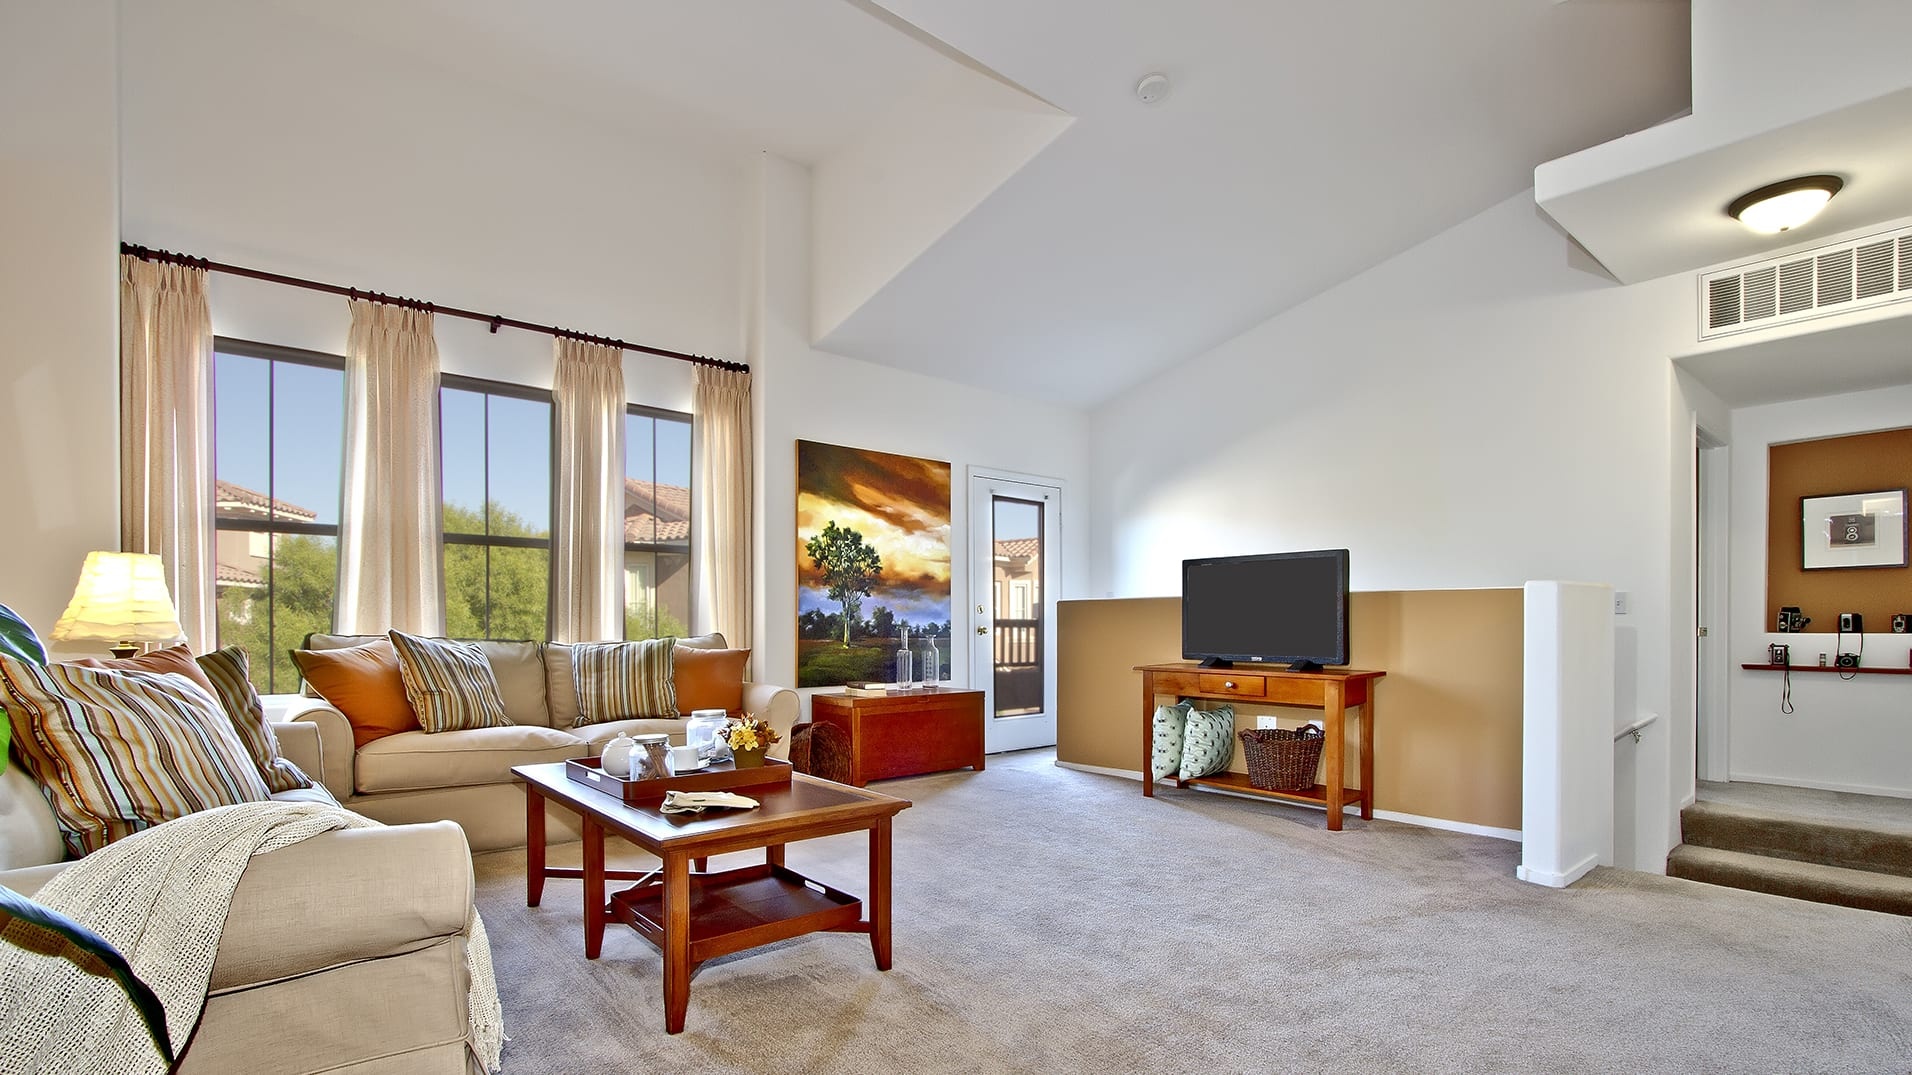 Spacious carpeted living room with high vaulted ceiling, large windows, interior staircase, and door to privative balcony.